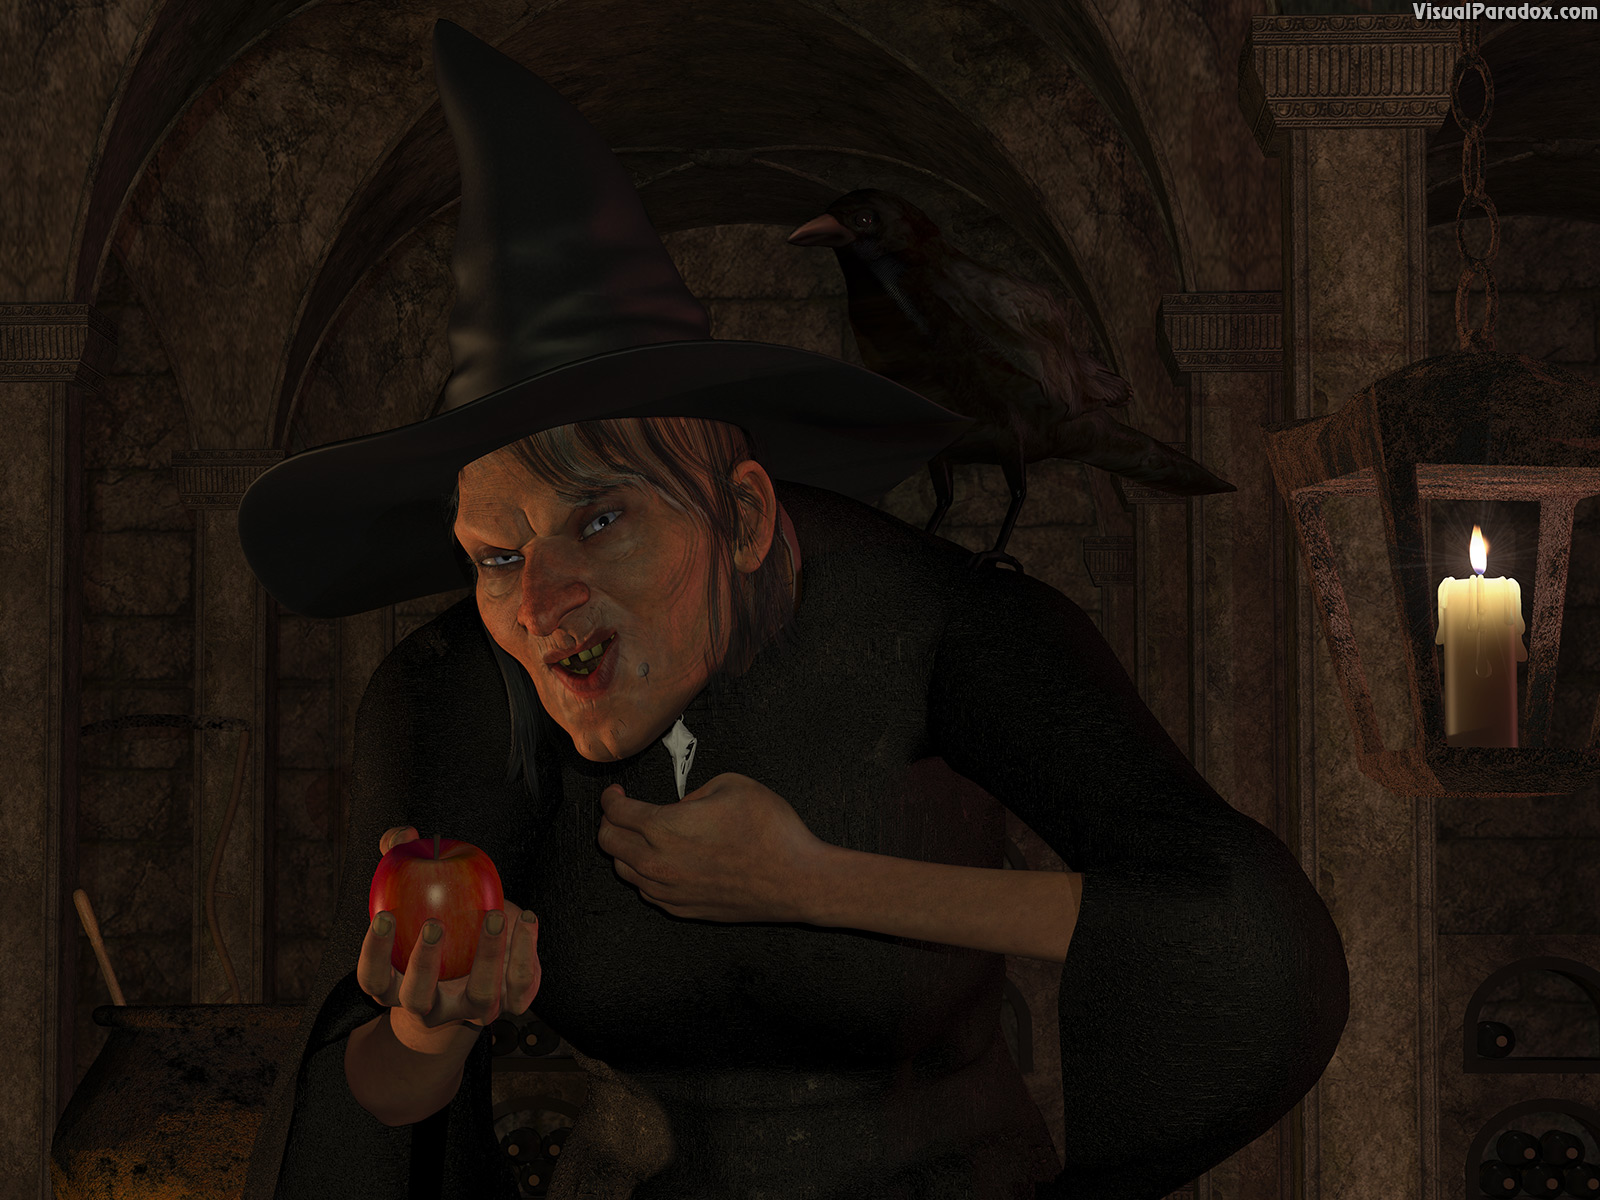 apple, black, cauldron, concept, costume, creepy, curse, day, demon, dress, eve, evil, fairytale, female, finger, food, fruit, giving, gothic, halloween, hand, holding, holiday, horrible, human, image, occasion, october, offering, old, poisonous, pot, raven, ripe, scary, sorceress, sorcery, spooky, tradition, traditional, ugly, wicked, witch, witchcraft, woman, crow, spell, cast, tainted, offer, poison, candle, pointed, hat, 3d, wallpaper